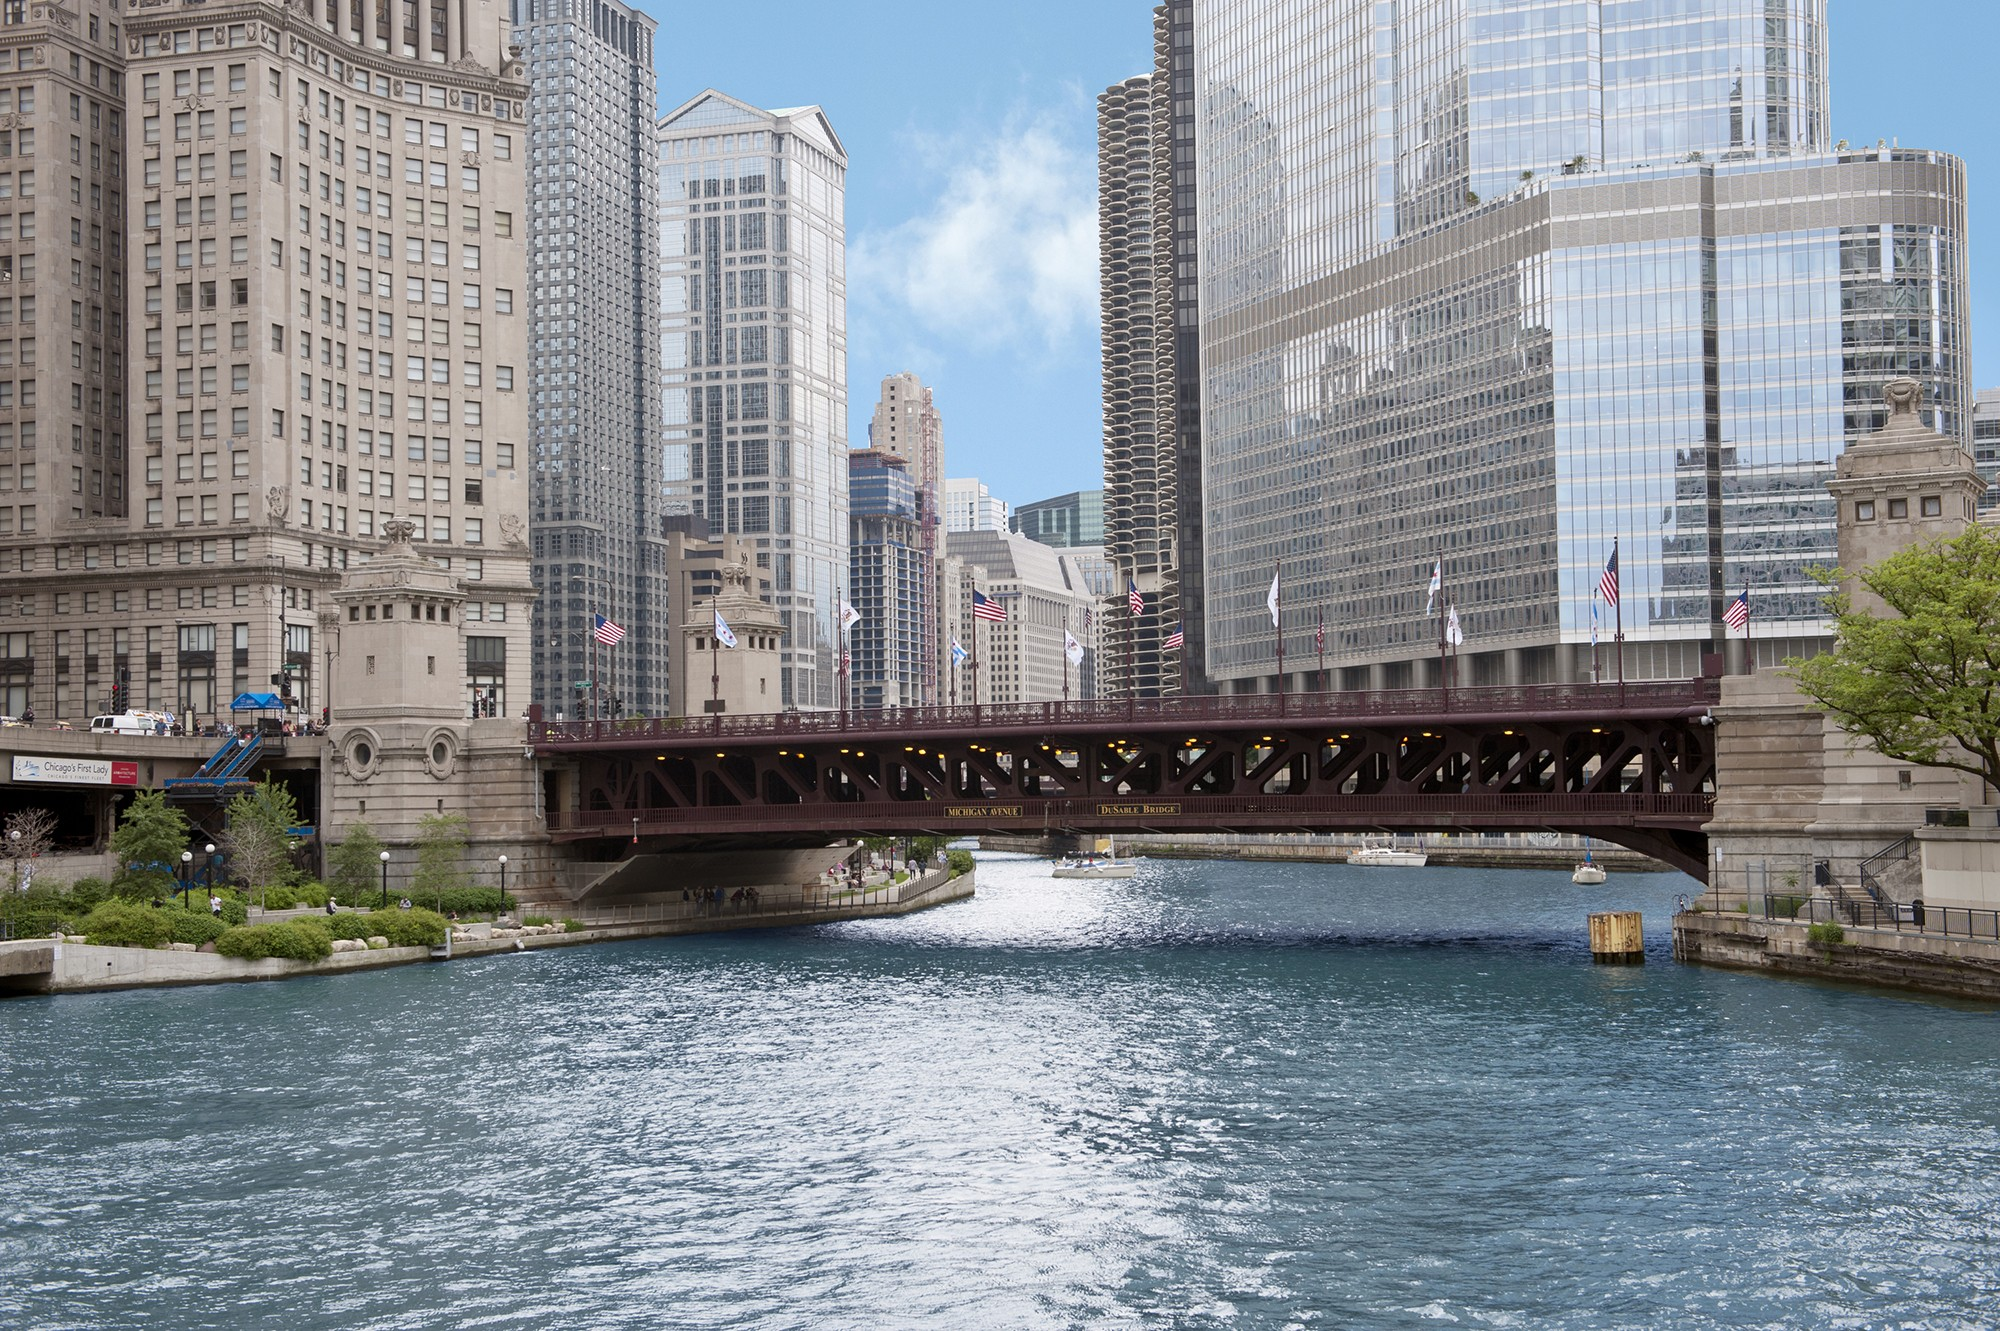 Michigan Avenue Bridge (DuSable Bridge) · Buildings of Chicago